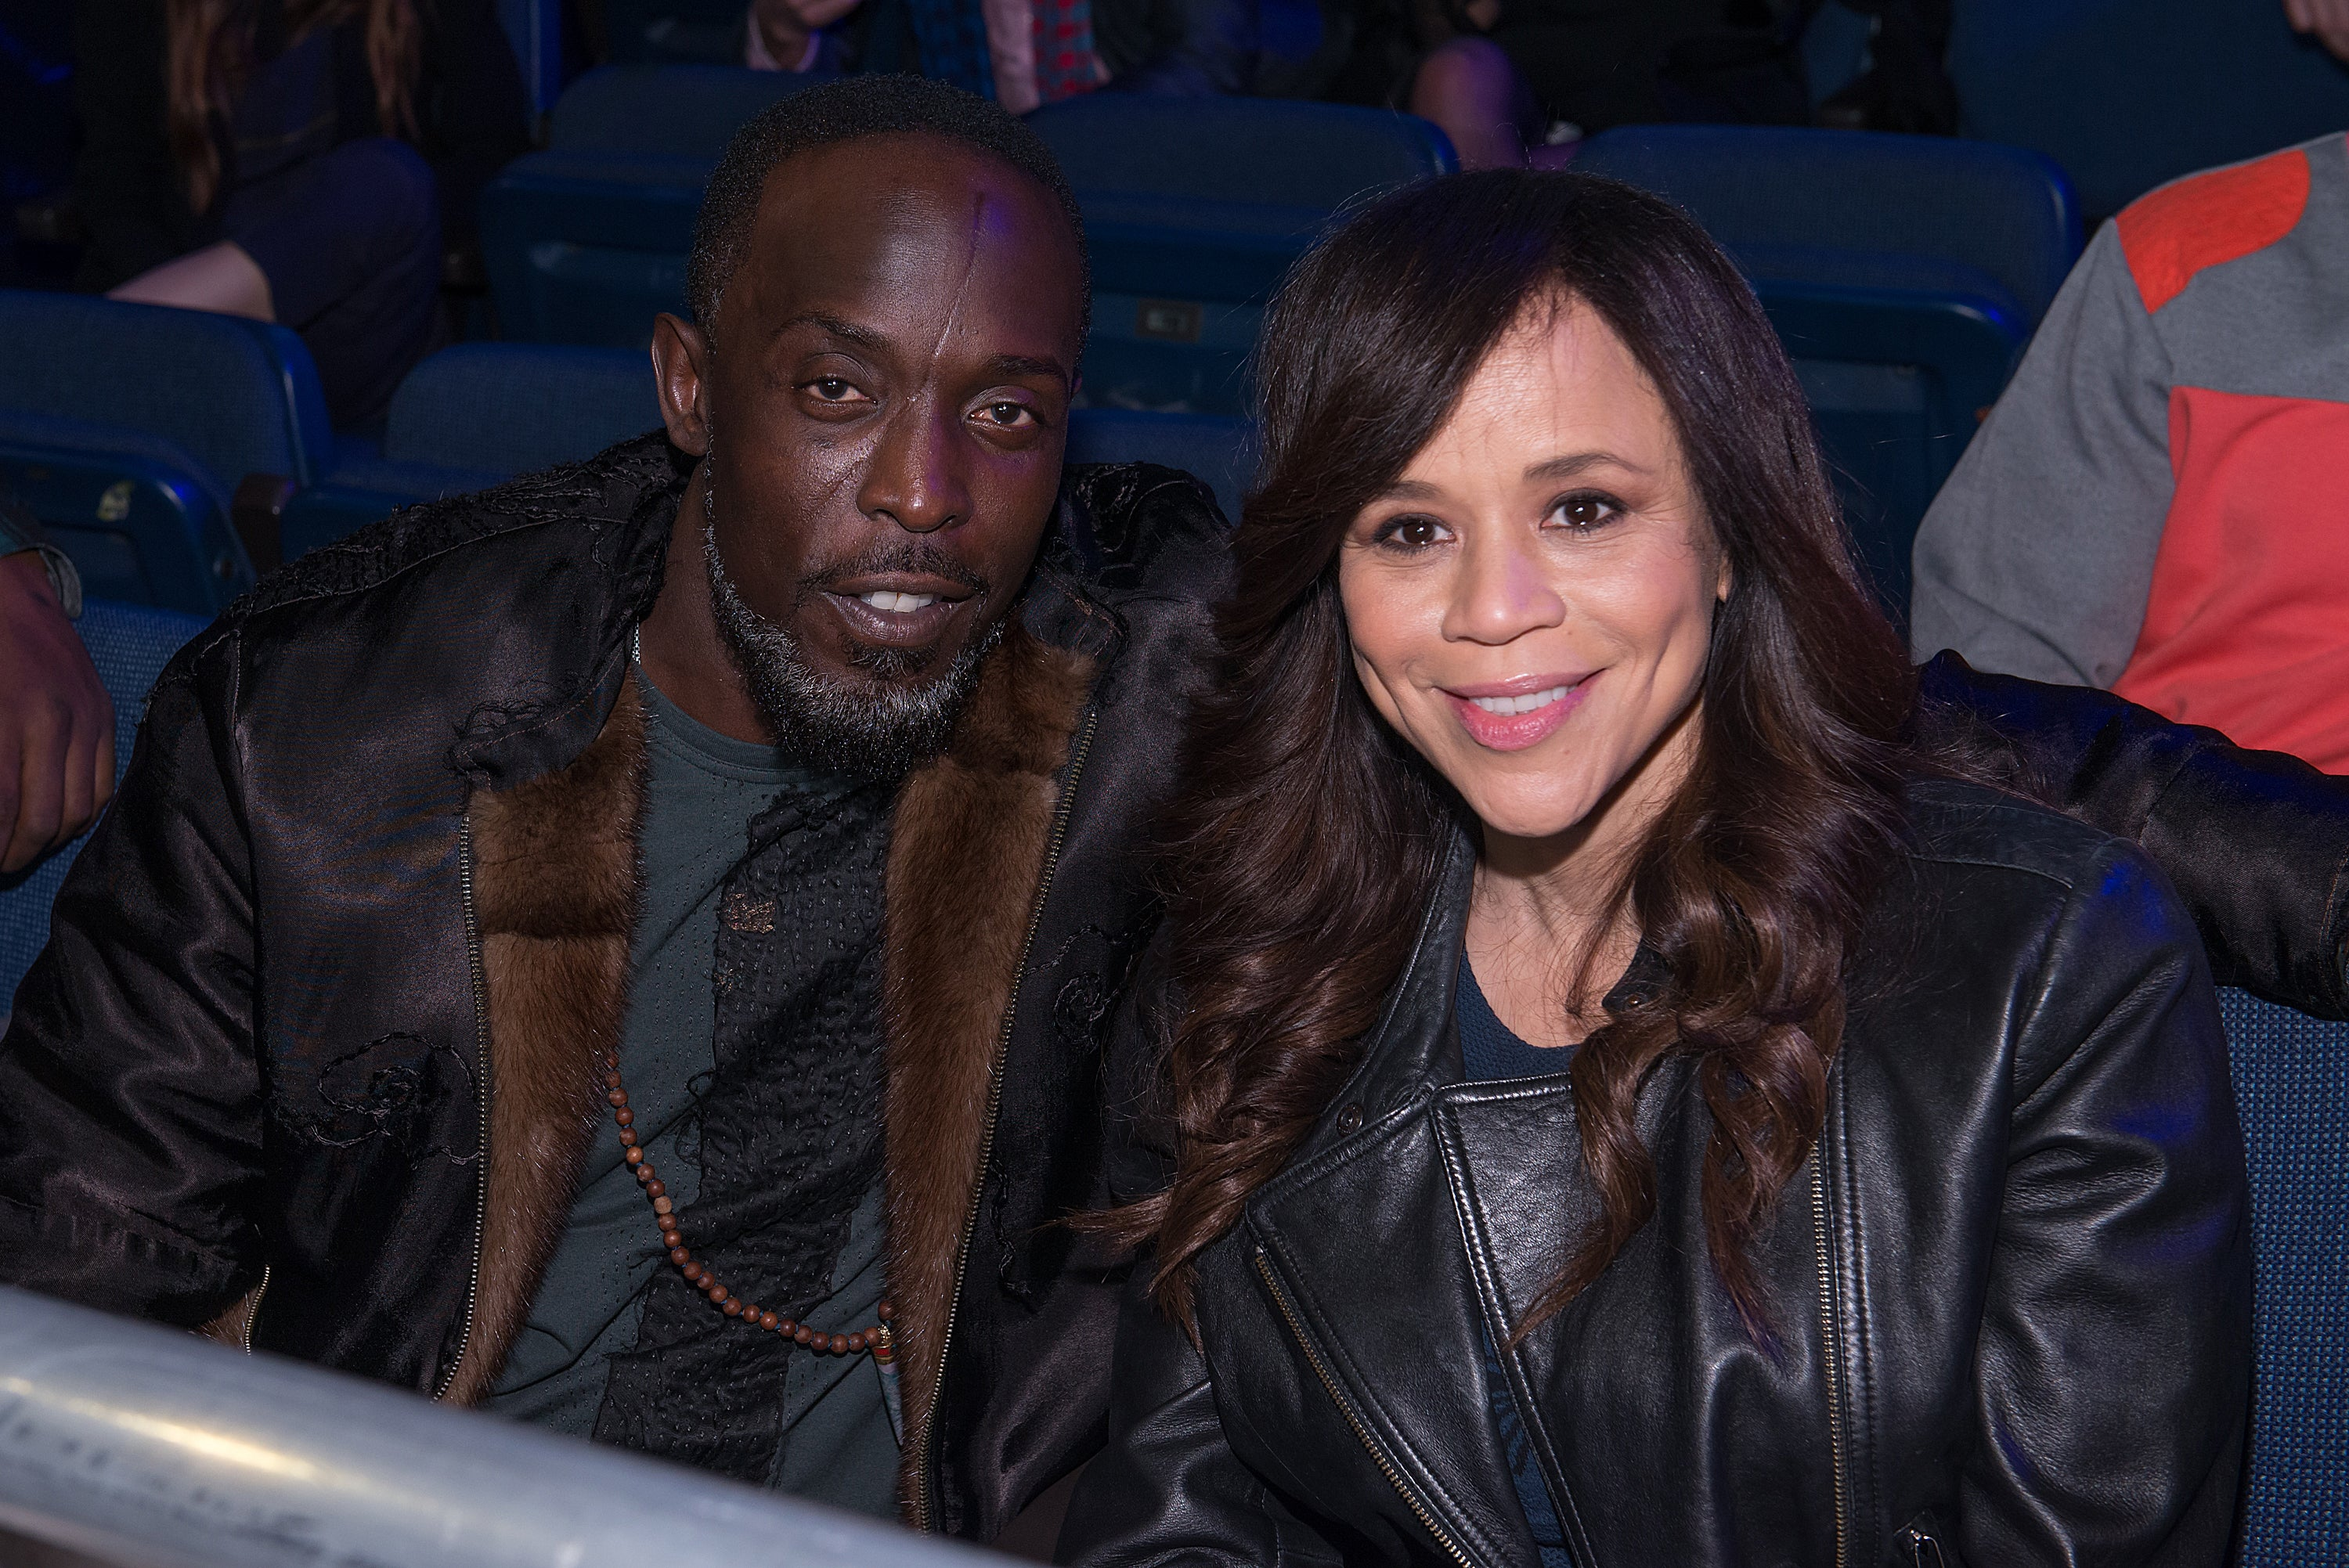 Actors Michael K. Williams and Rosie Perez attend 2015 Throne Boxing at The Theater at Madison Square Garden on January 9, 2015 in New York City.